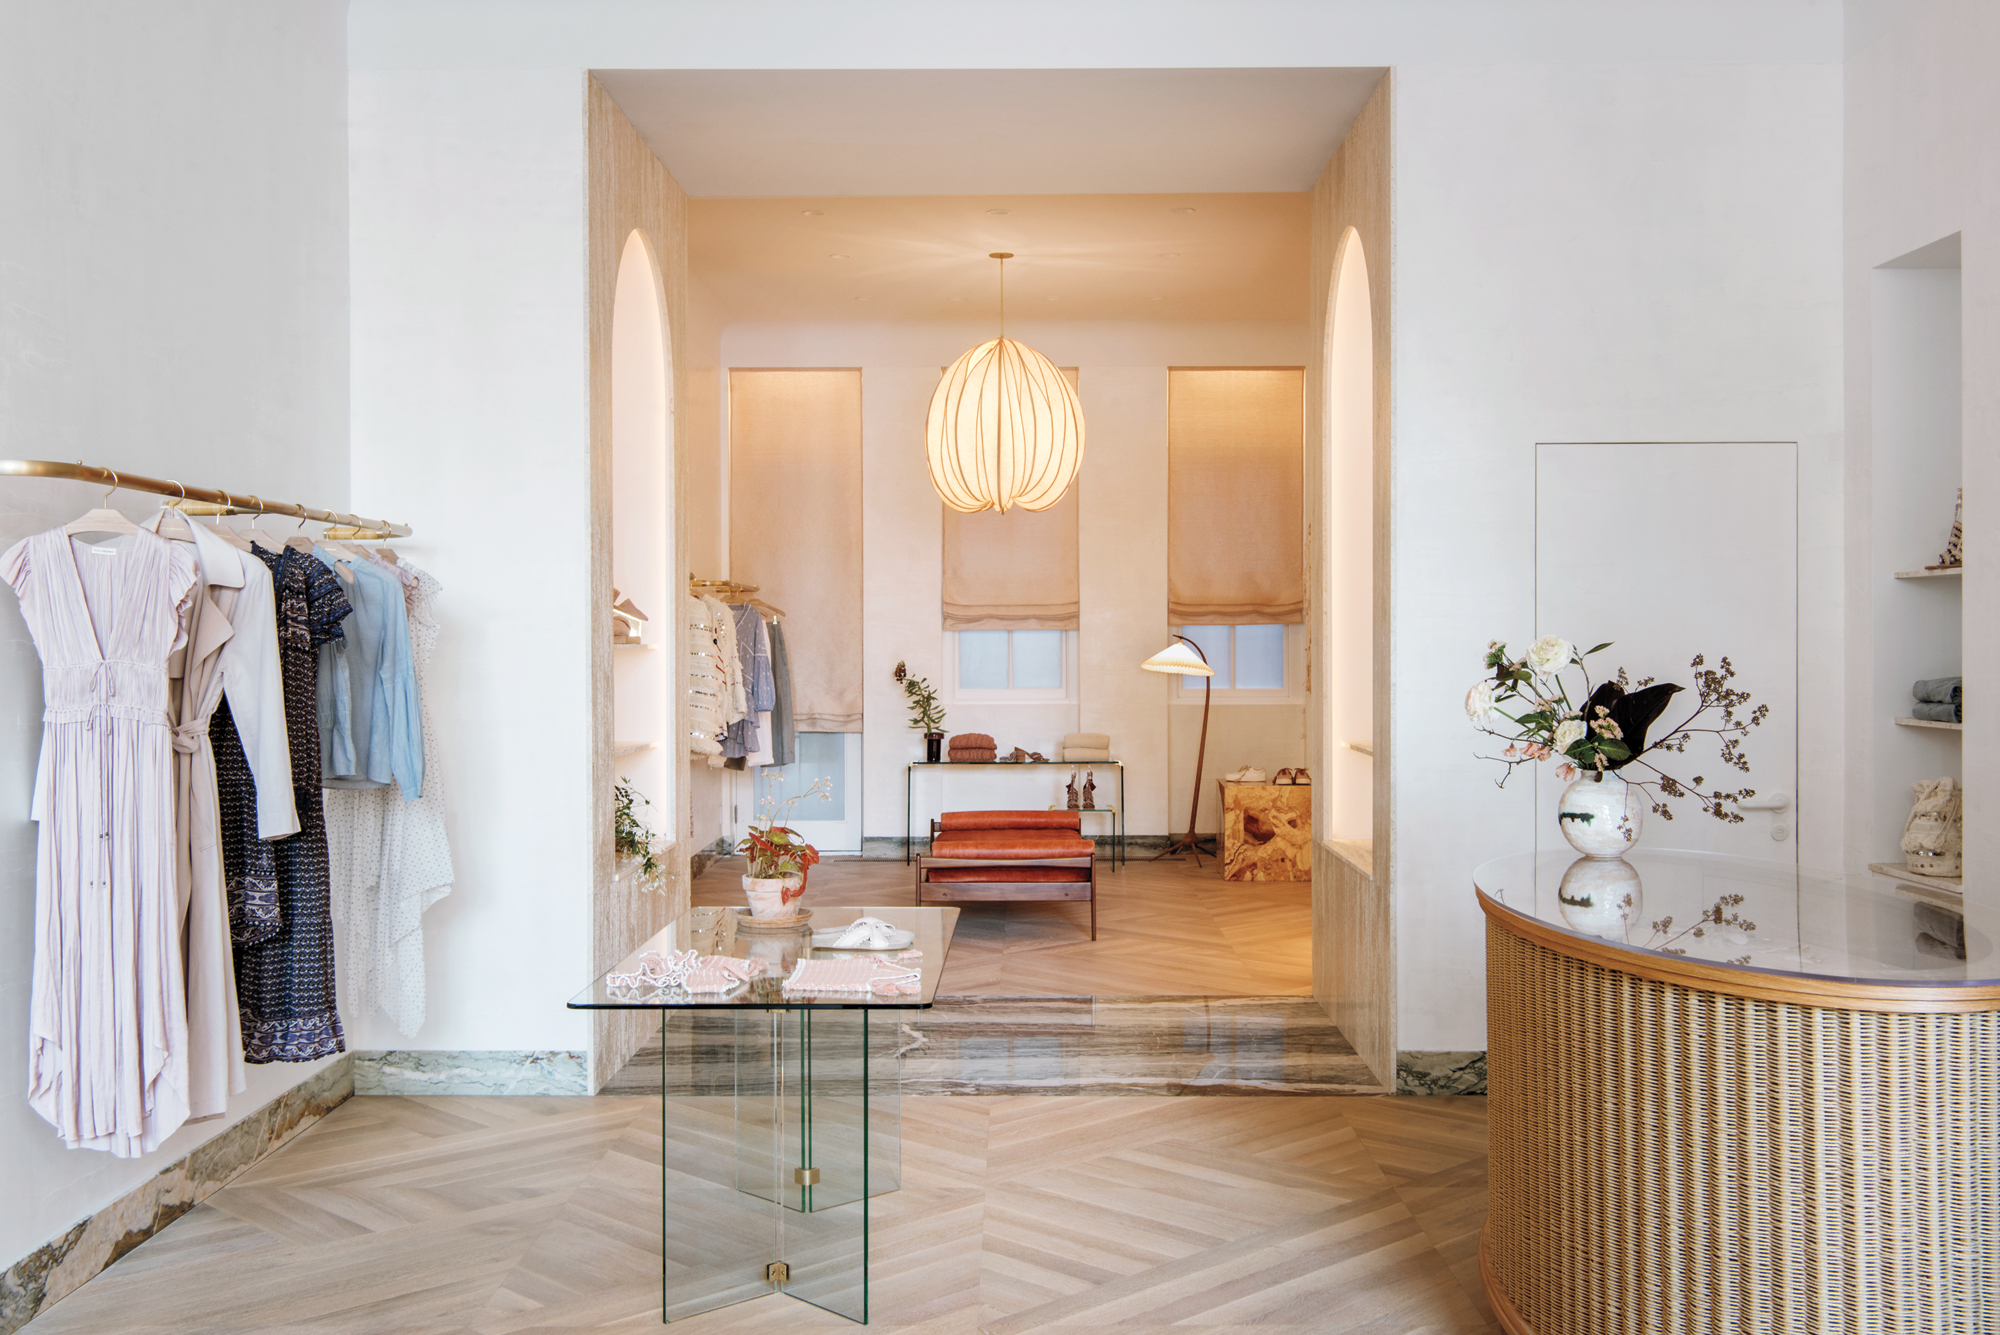 Ulla johnson s nyc boutique takes after a town house for Boutique interior design